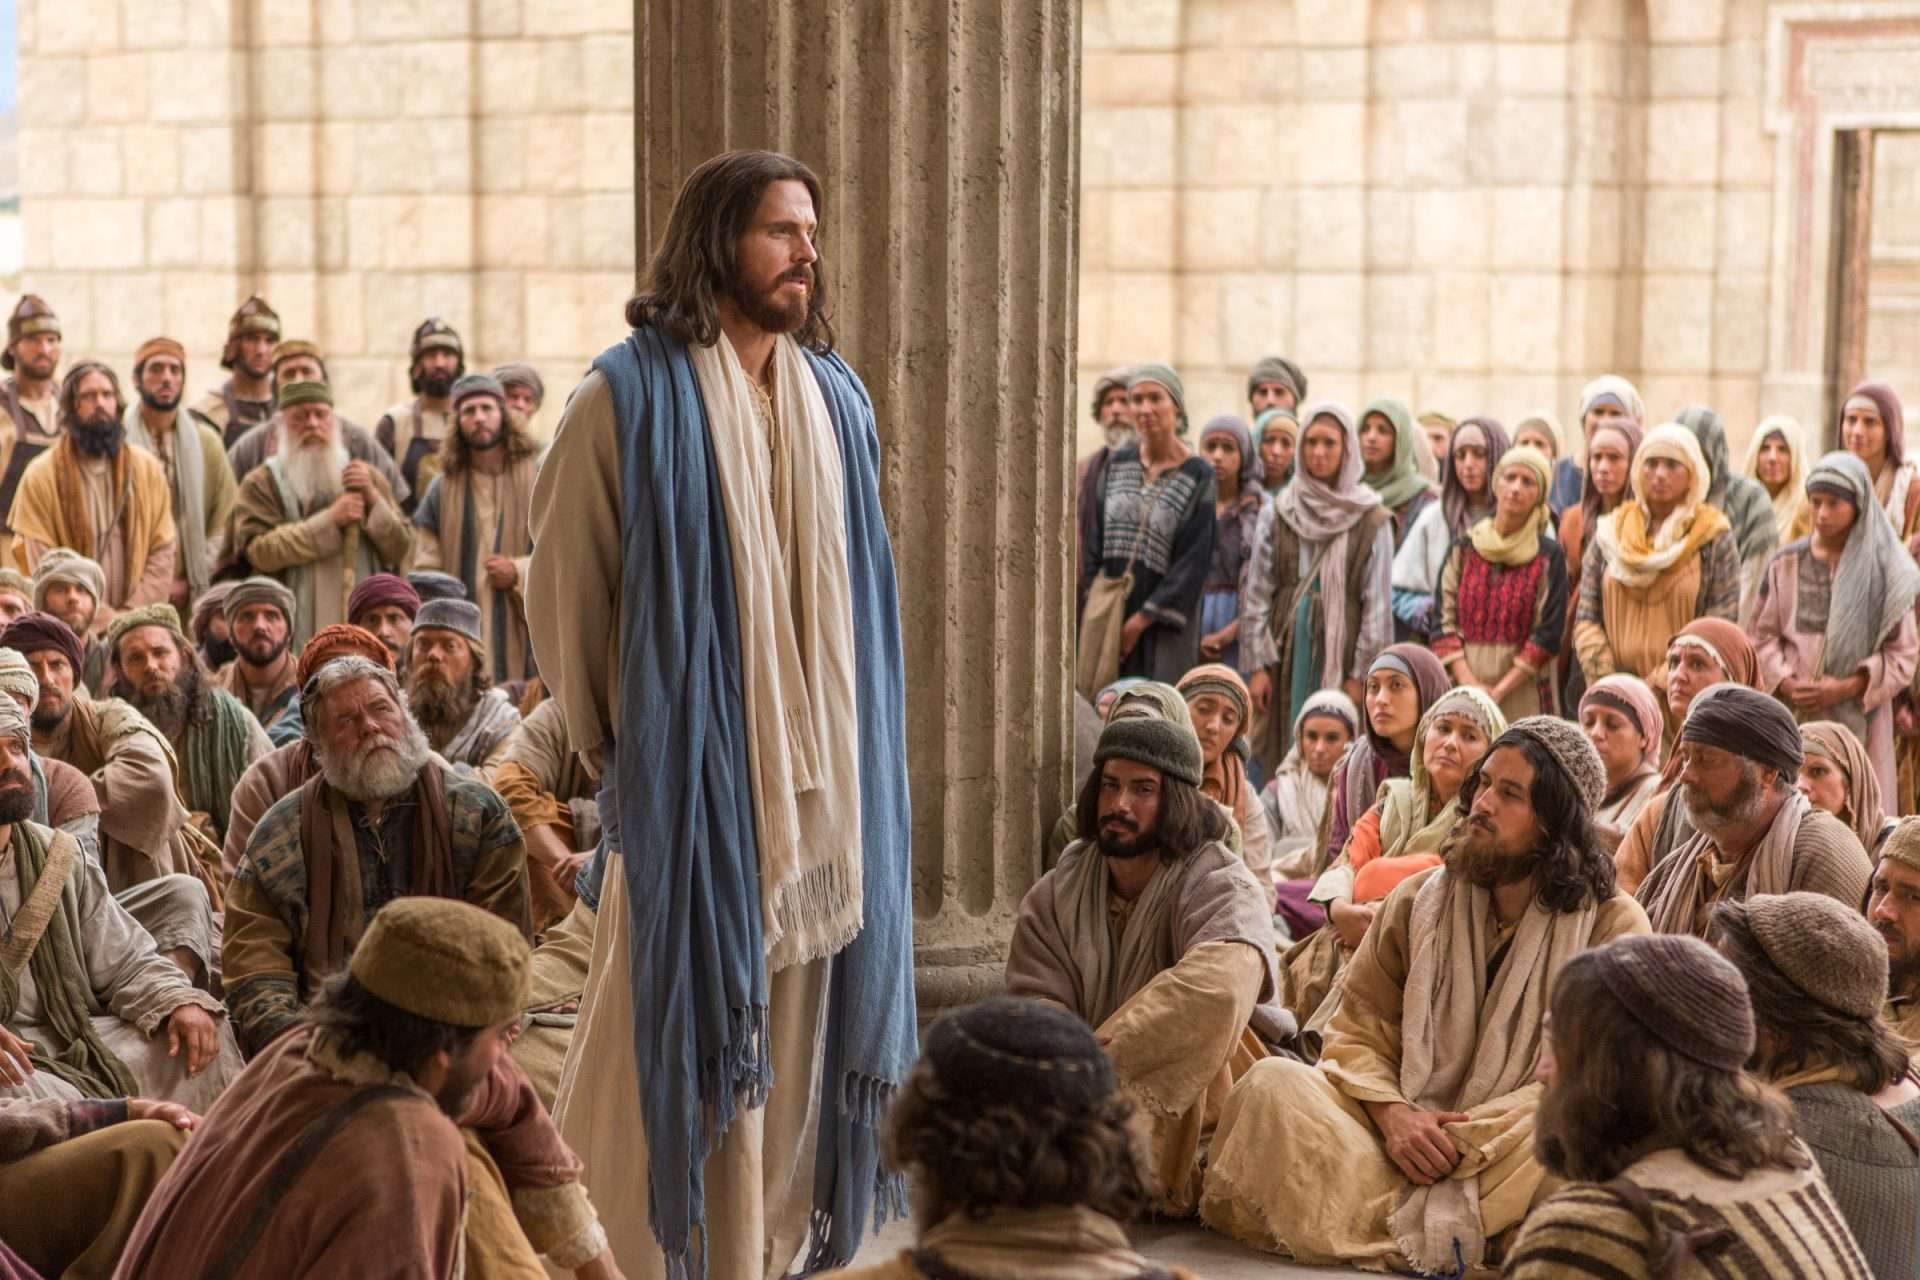 What did Jesus mean in saying that the Father was greater than he?